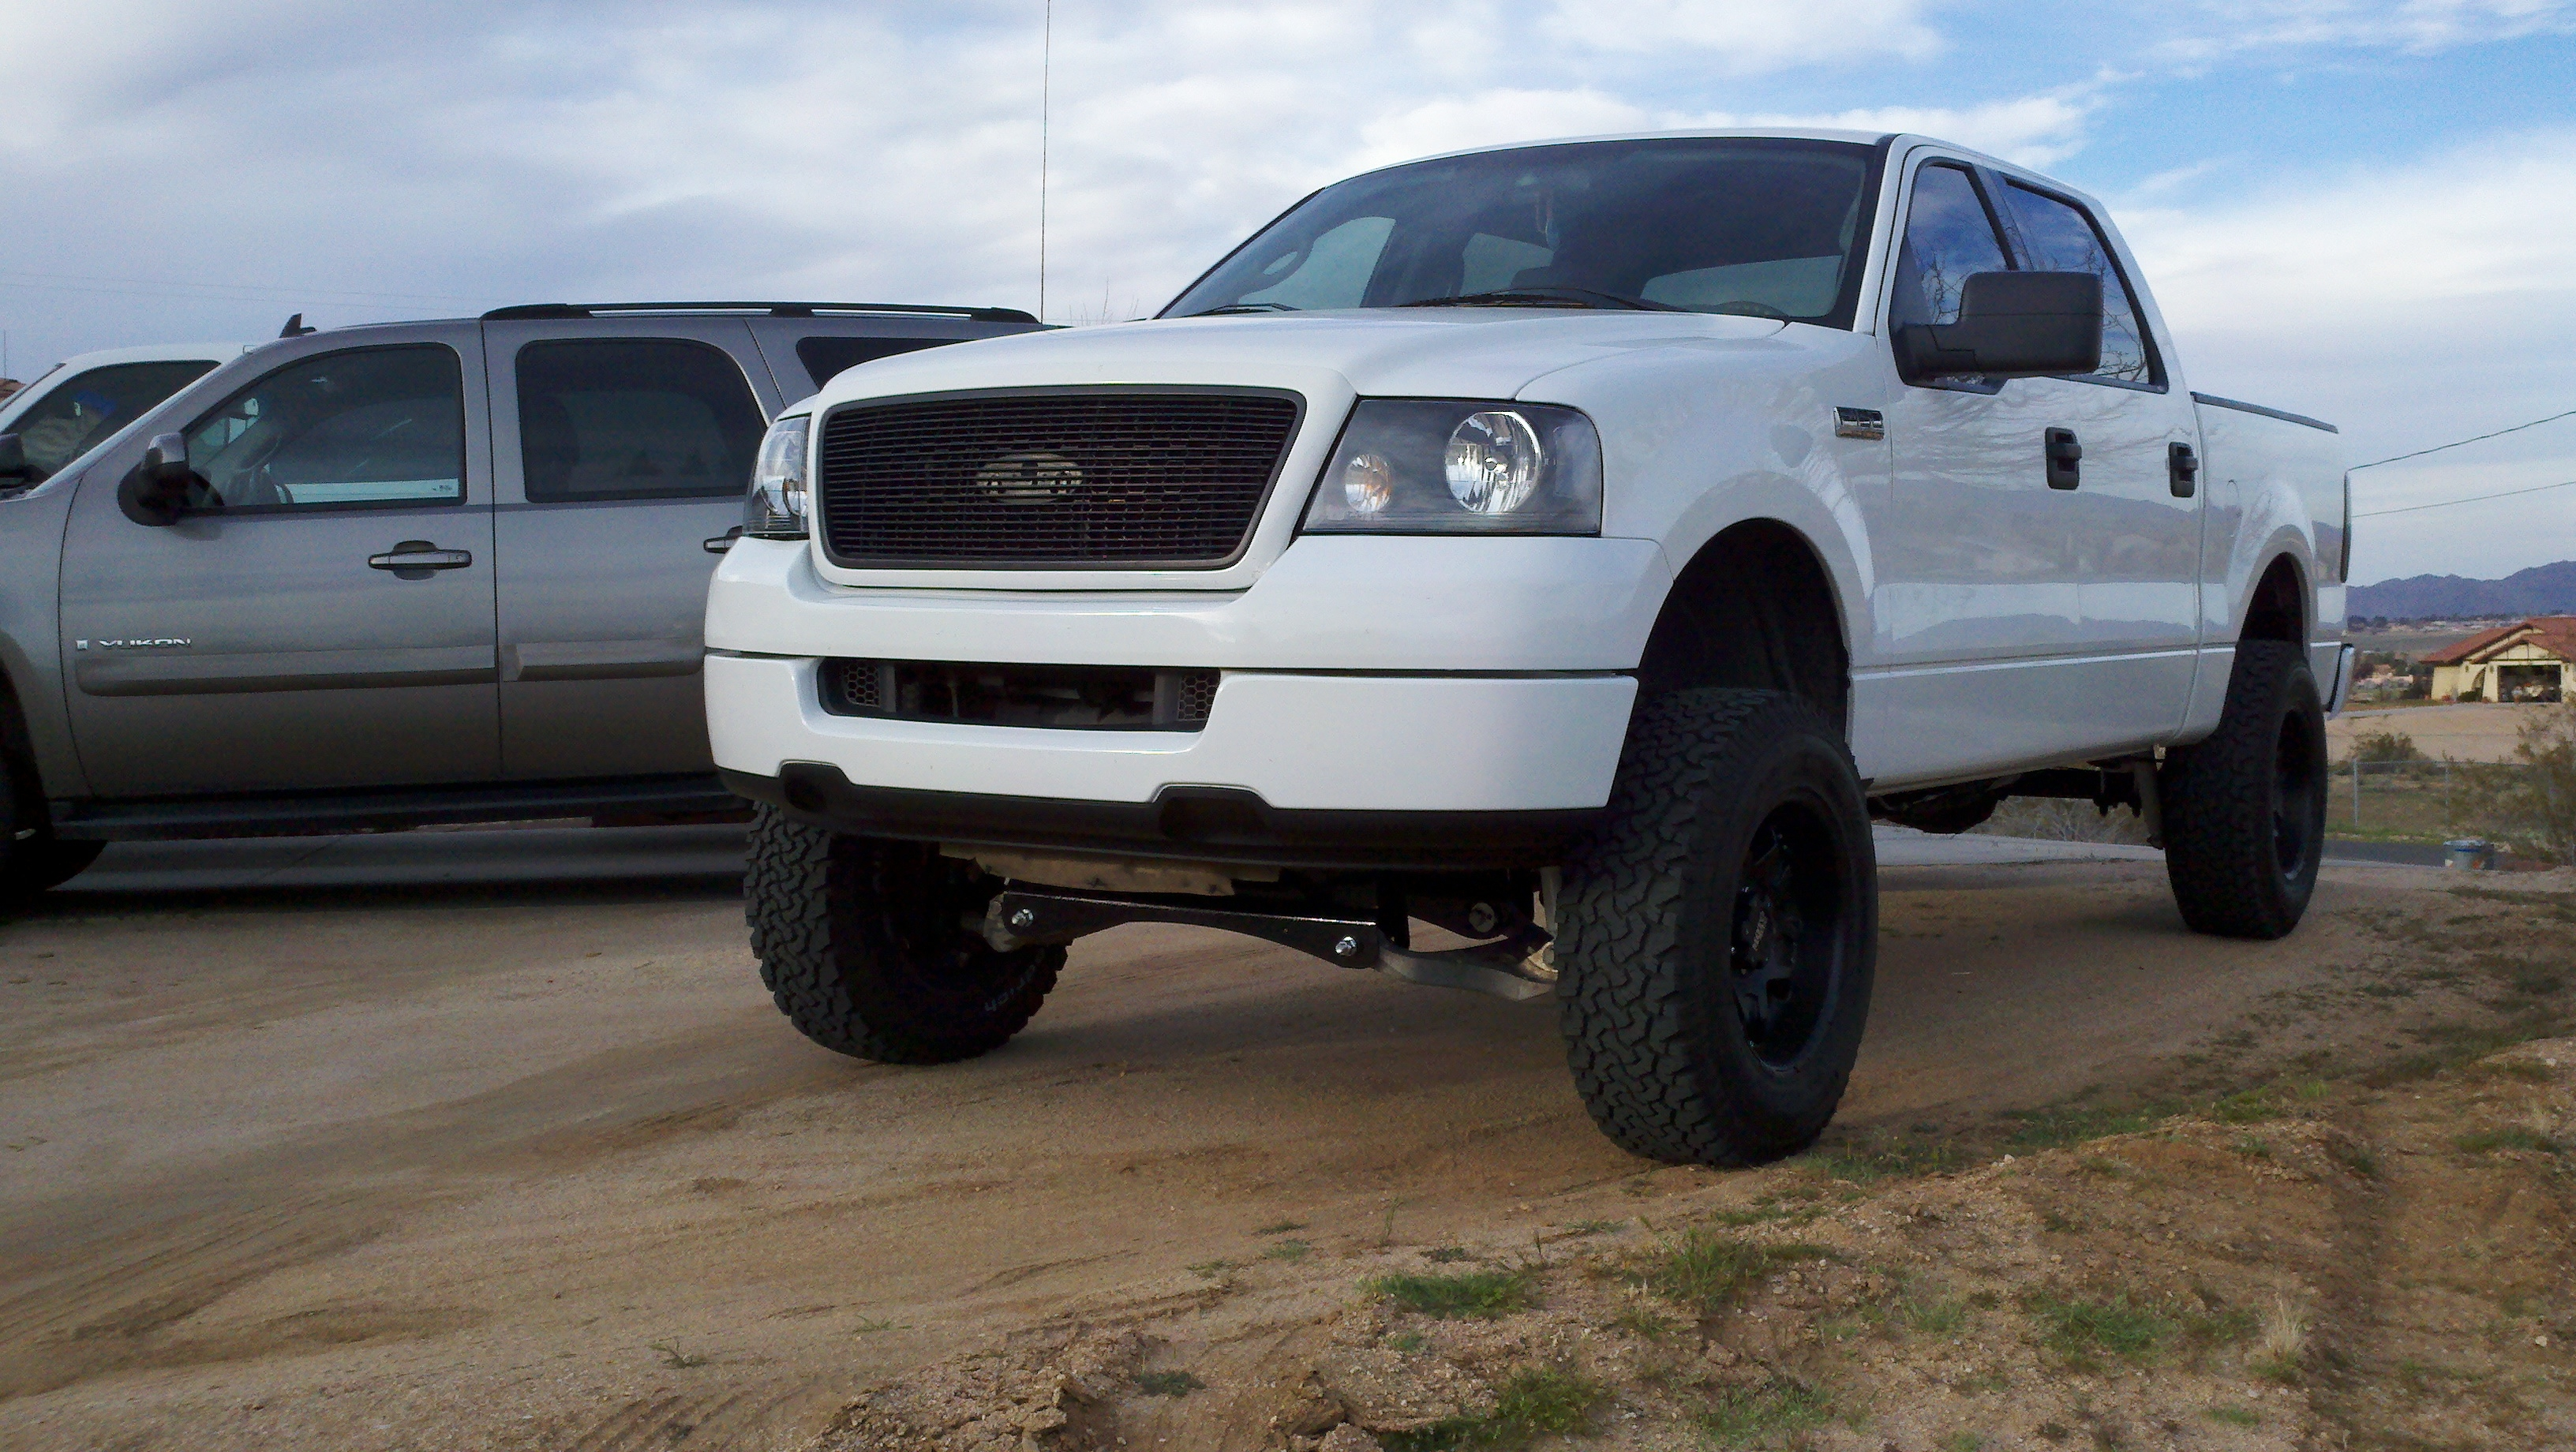 DoubleVisioN 2004 Ford F150 SuperCrew CabXLT Styleside Pickup 4D 5